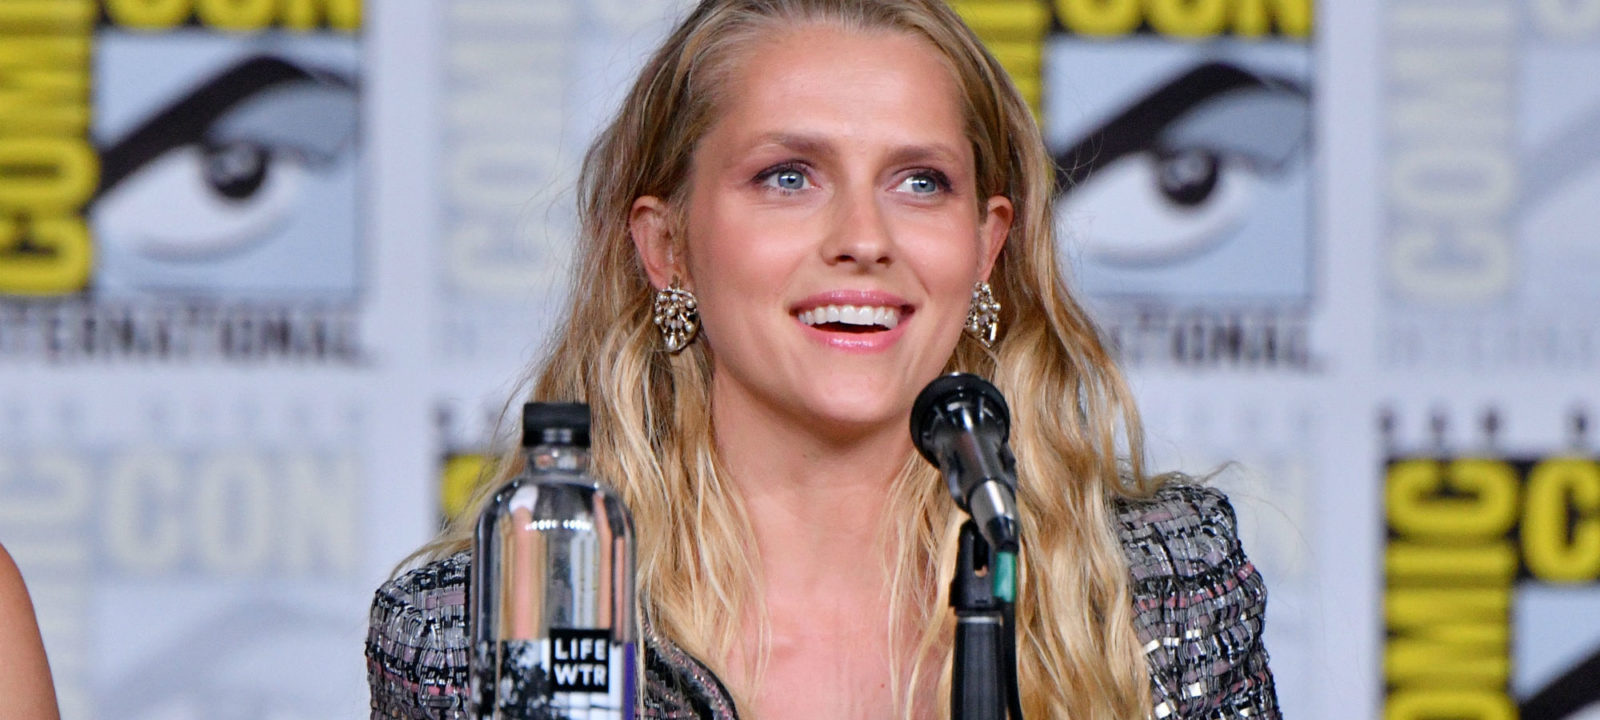 6 Things You Should Know About 'A Discovery of Witches' Teresa Palmer